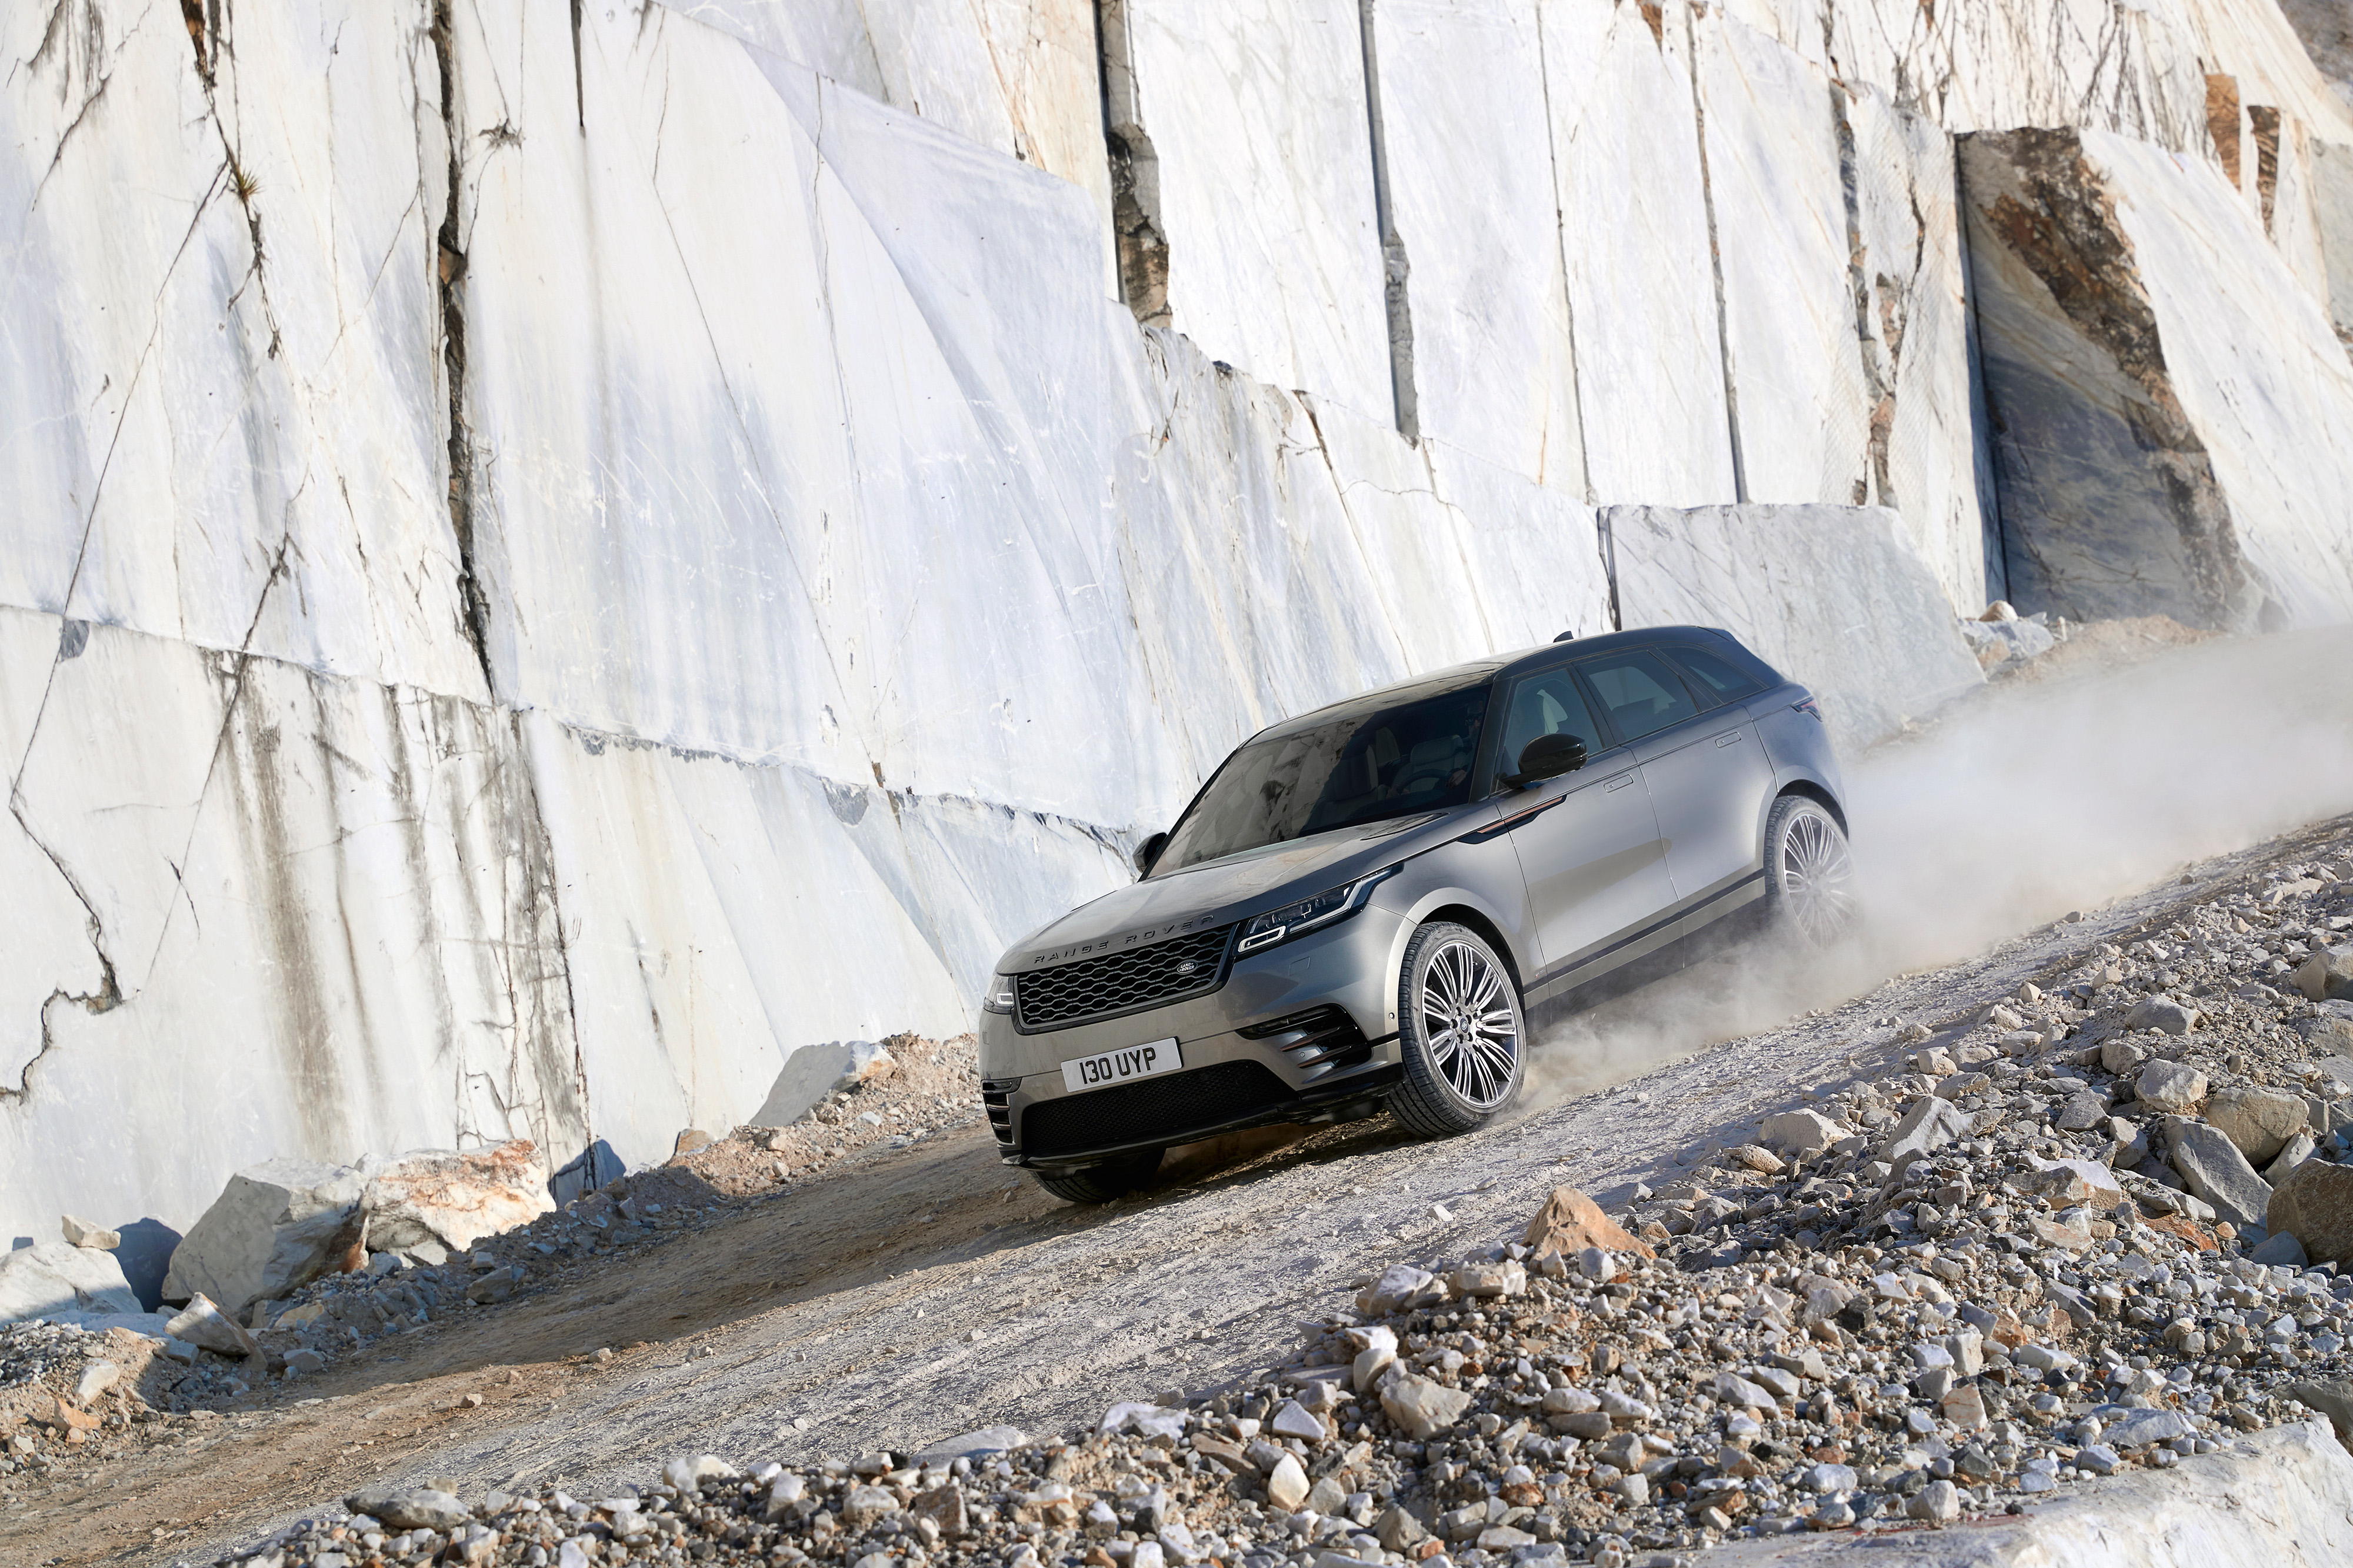 If you want to drive a Velar in a disused quarry, you can. If you know someone with a disused quarry.